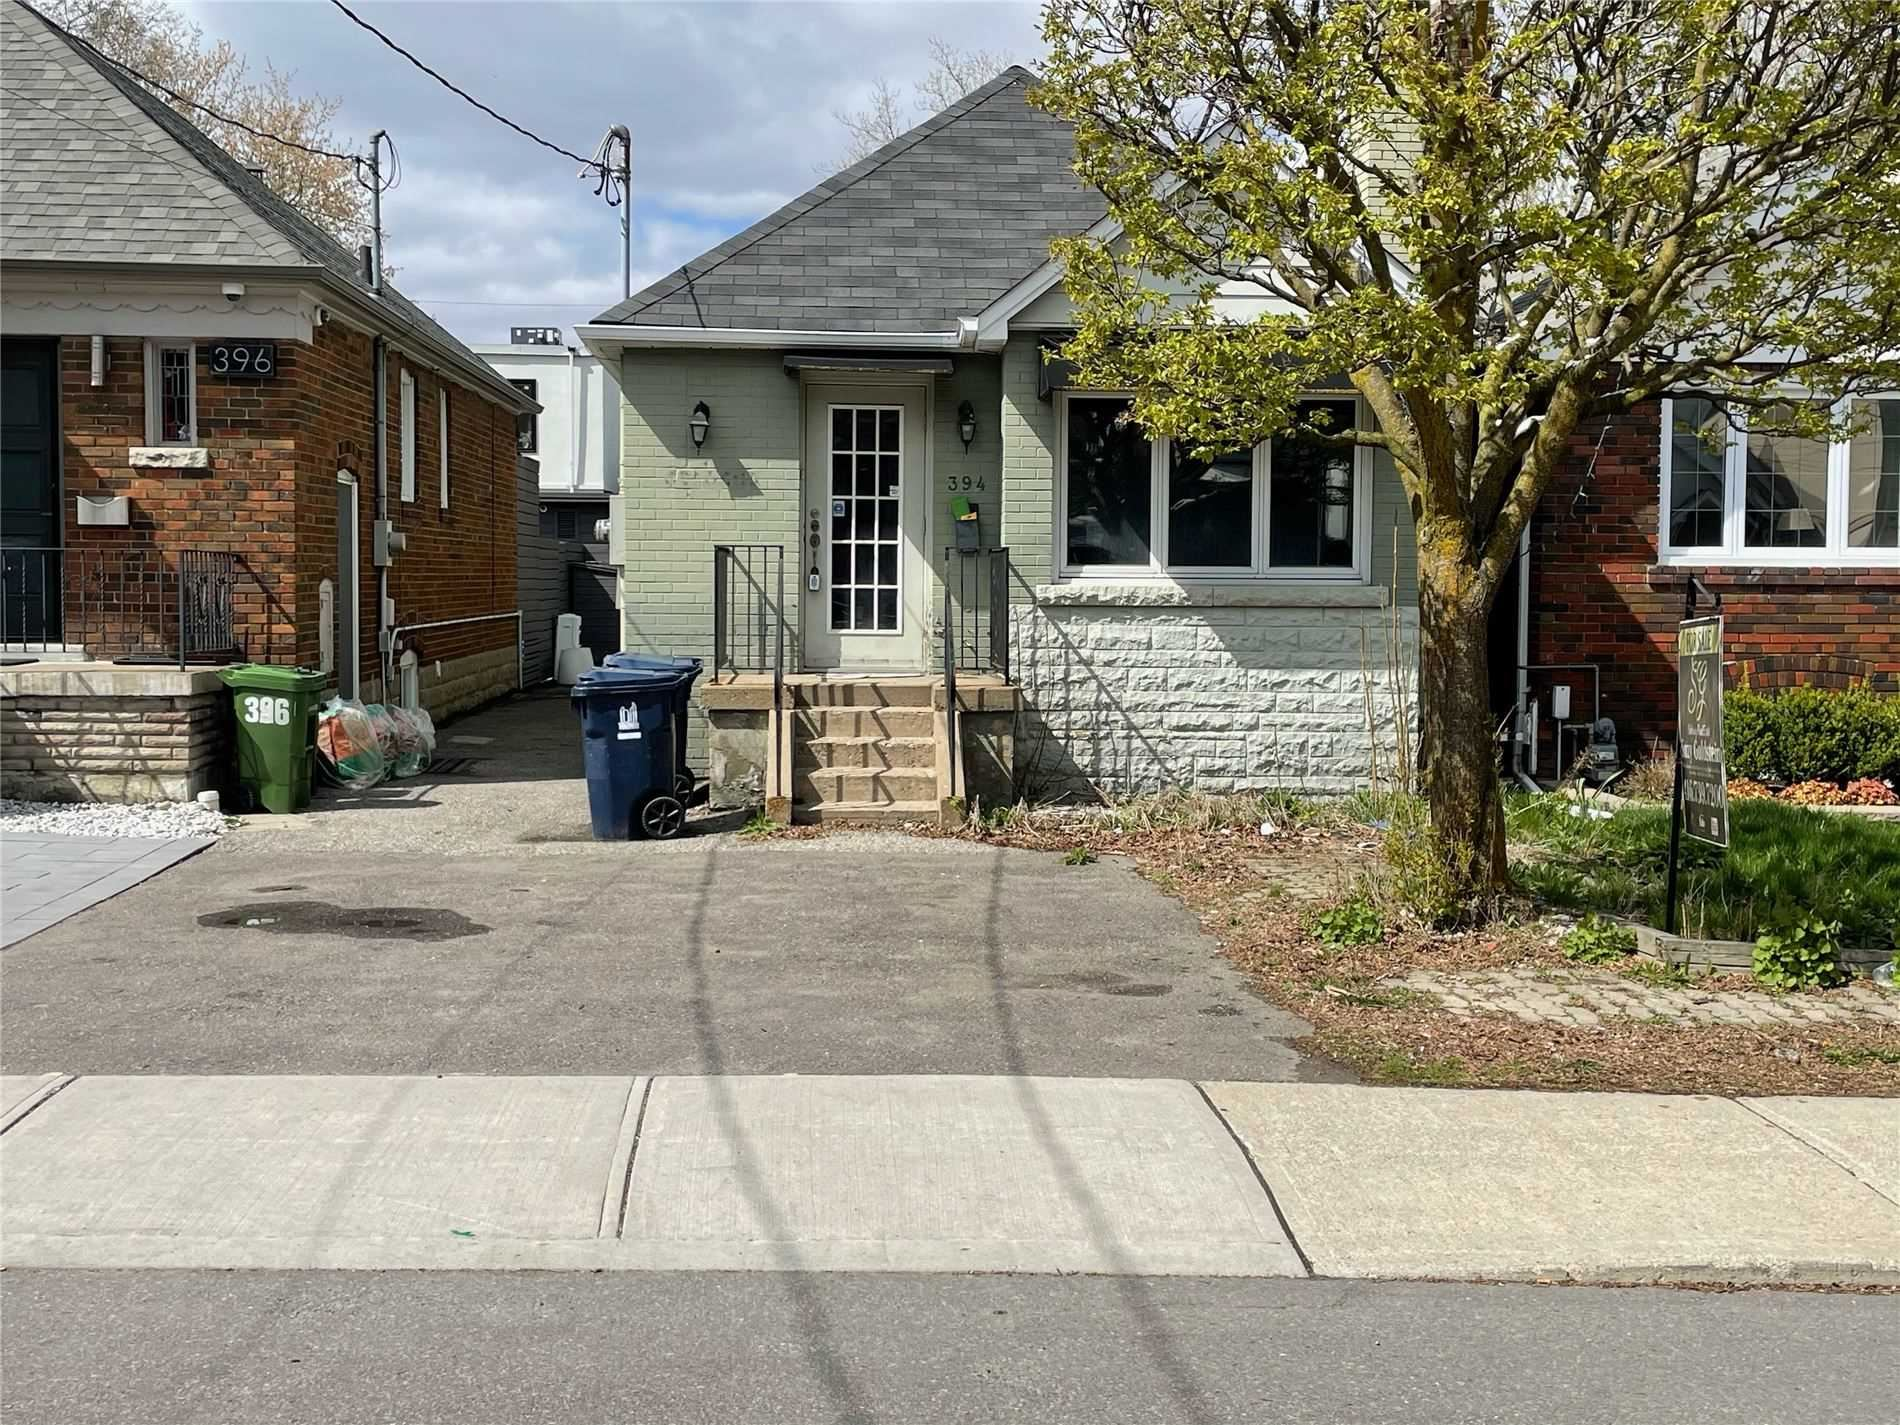 394 Old Orchard Grve, Toronto, ON M5M2E9 - MLS#: C5204631